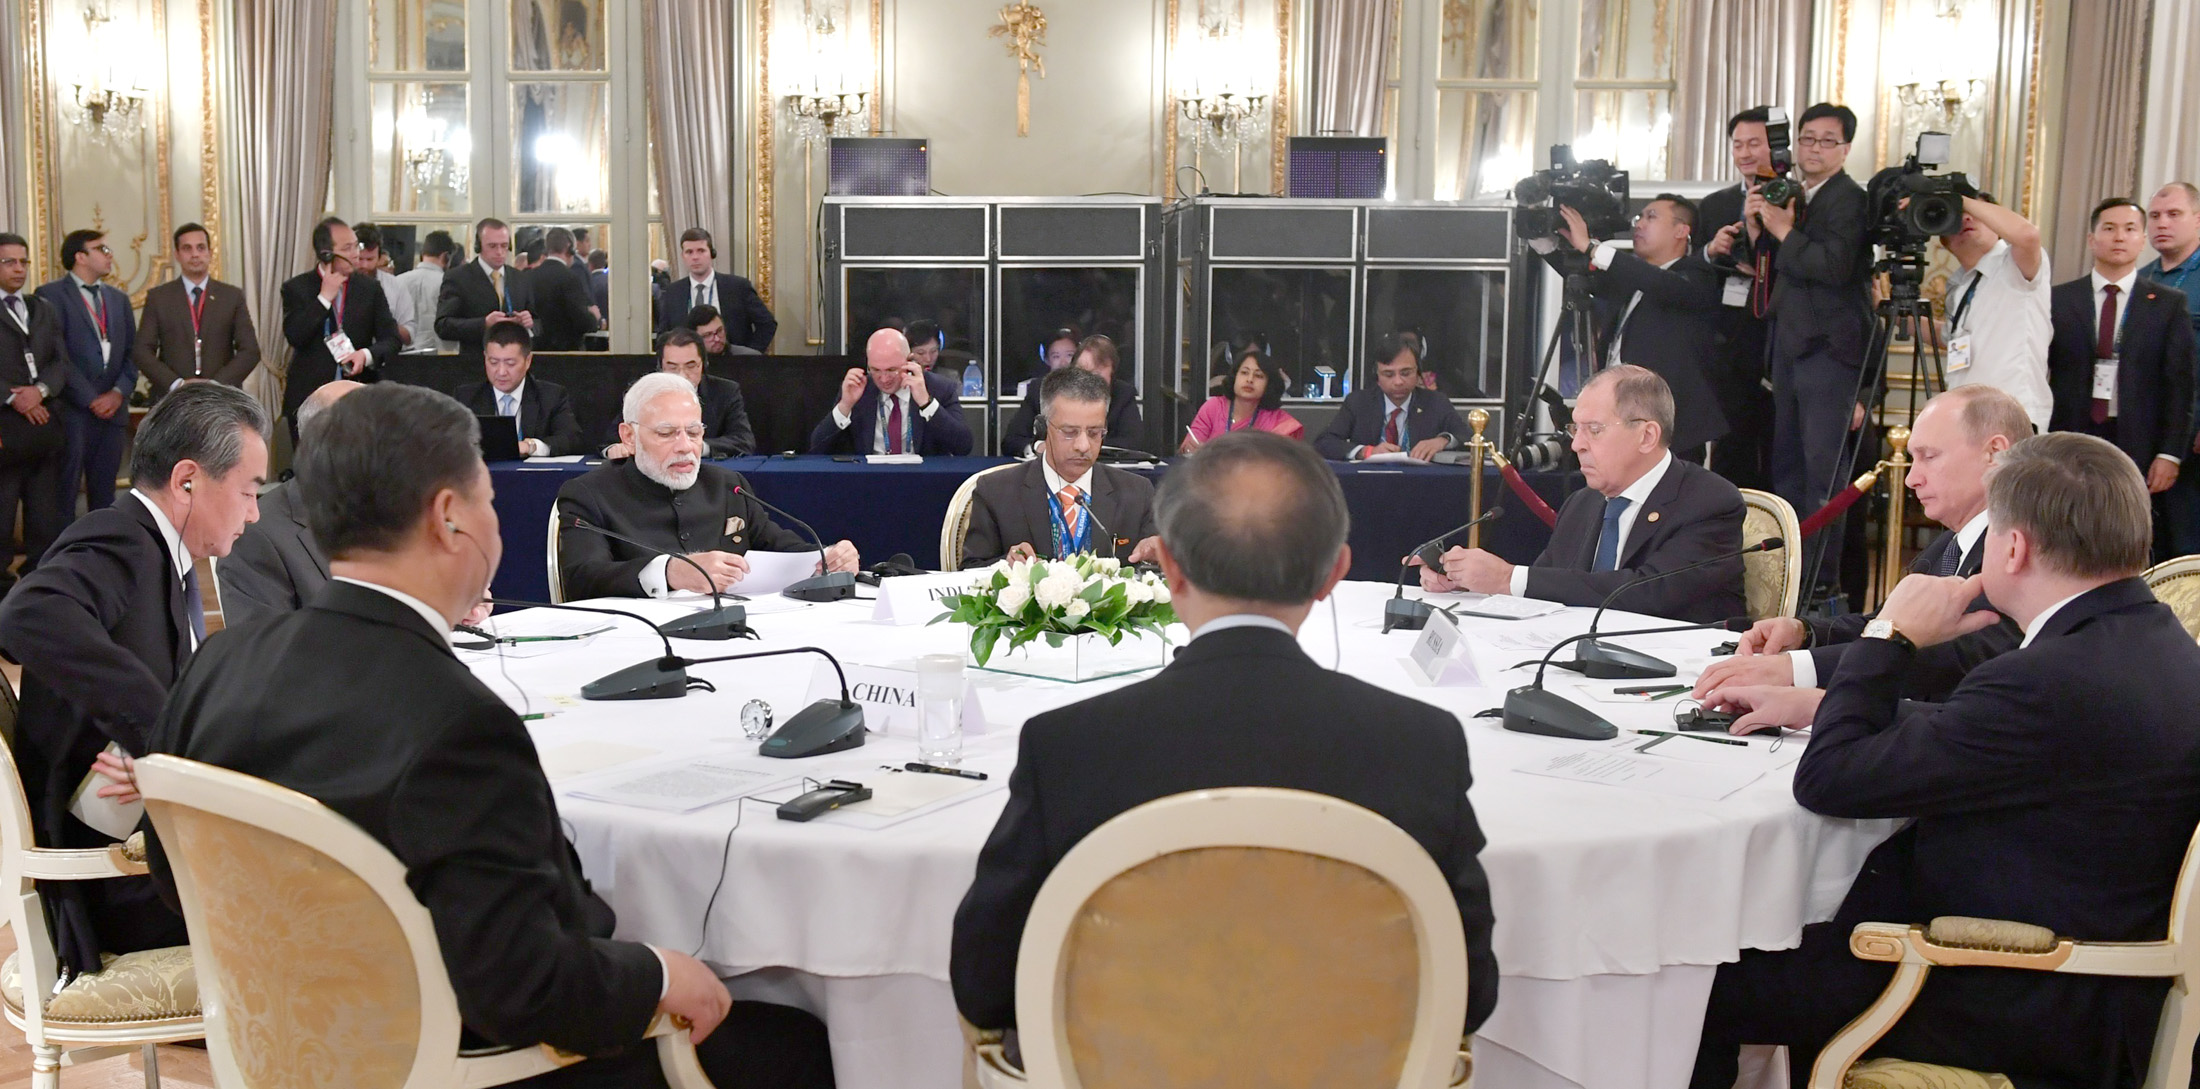 The Prime Minister, Shri Narendra Modi, the President of Russian Federation, Mr. Vladimir Putin and the President of the People's Republic of China, Mr. Xi Jinping at the RIC (Russia, India, China) Informal Summit, in Buenos Aires, Argentina on November 30, 2018.